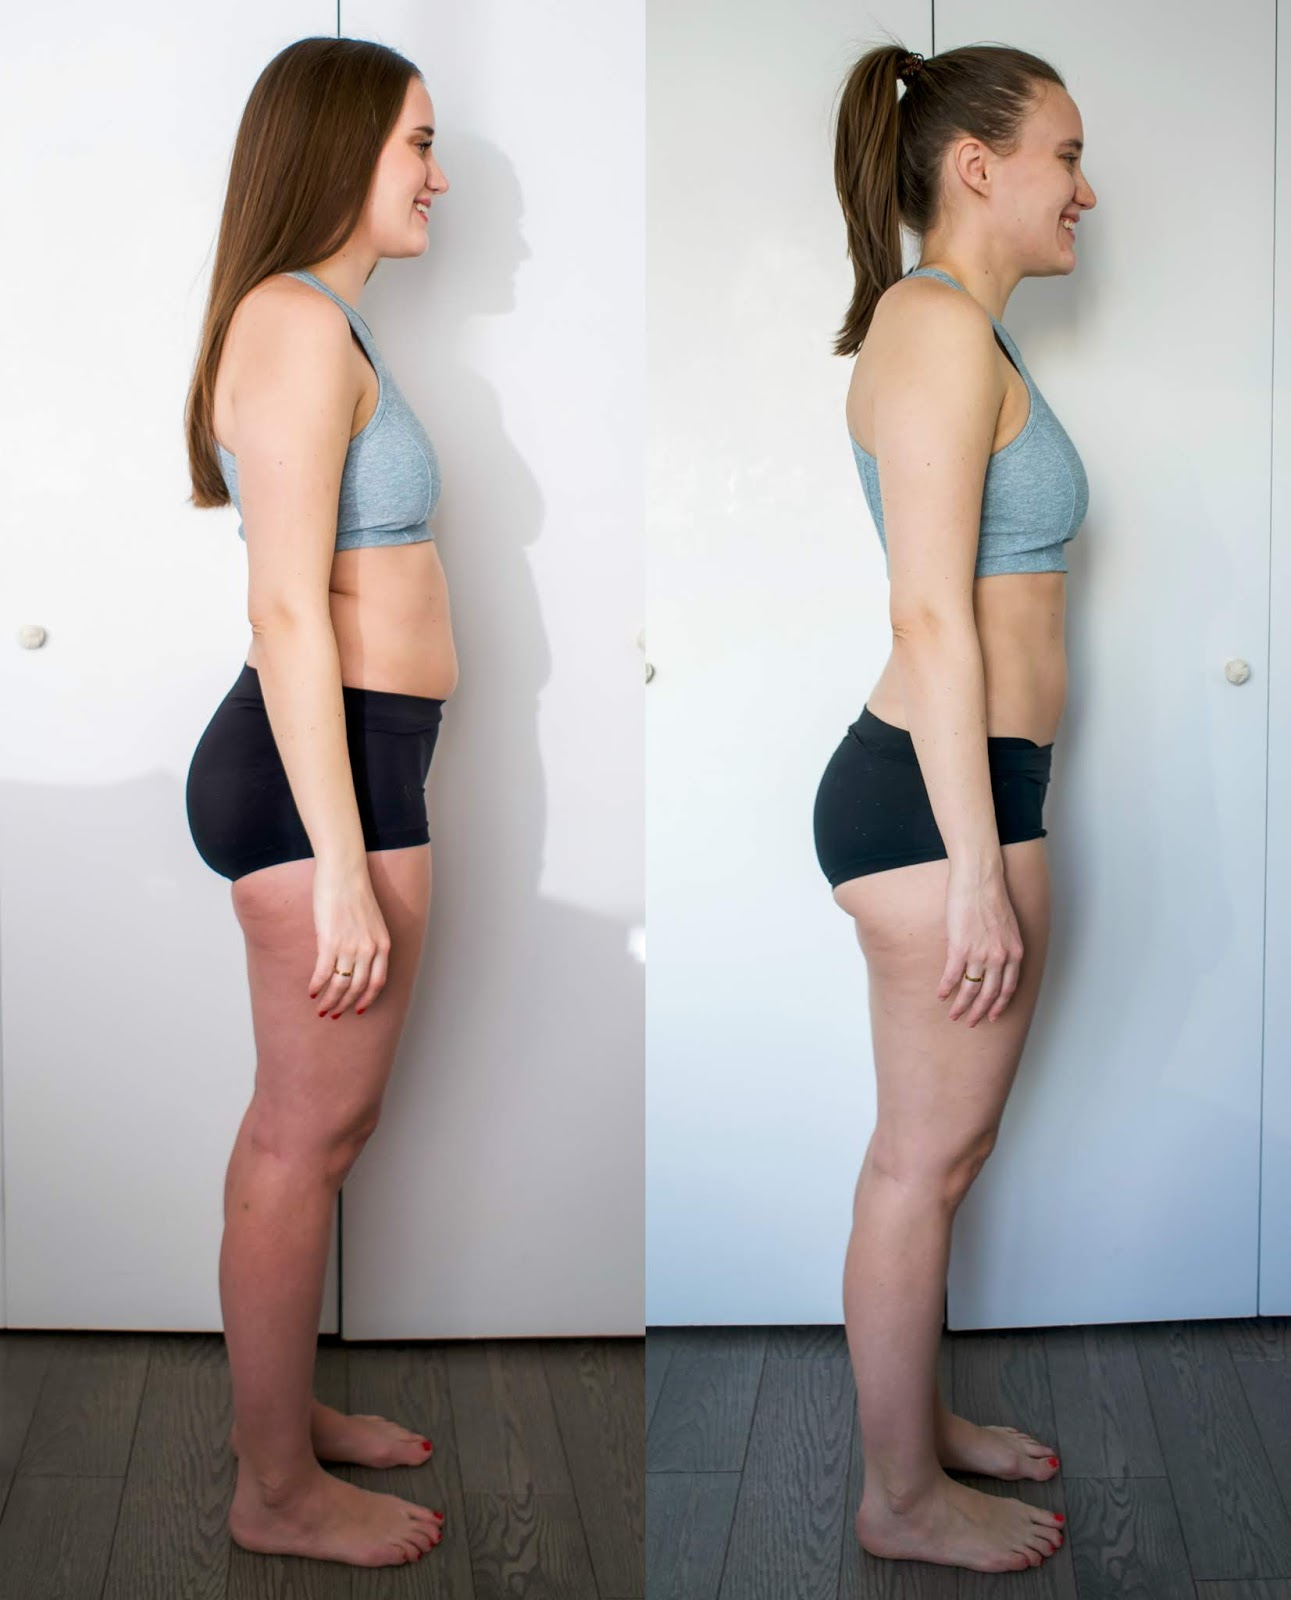 Pilates Before And After : pilates, before, after, Month, Unlimited, Review, (before, After), Fashion, Lifestyle, Covering, Bases